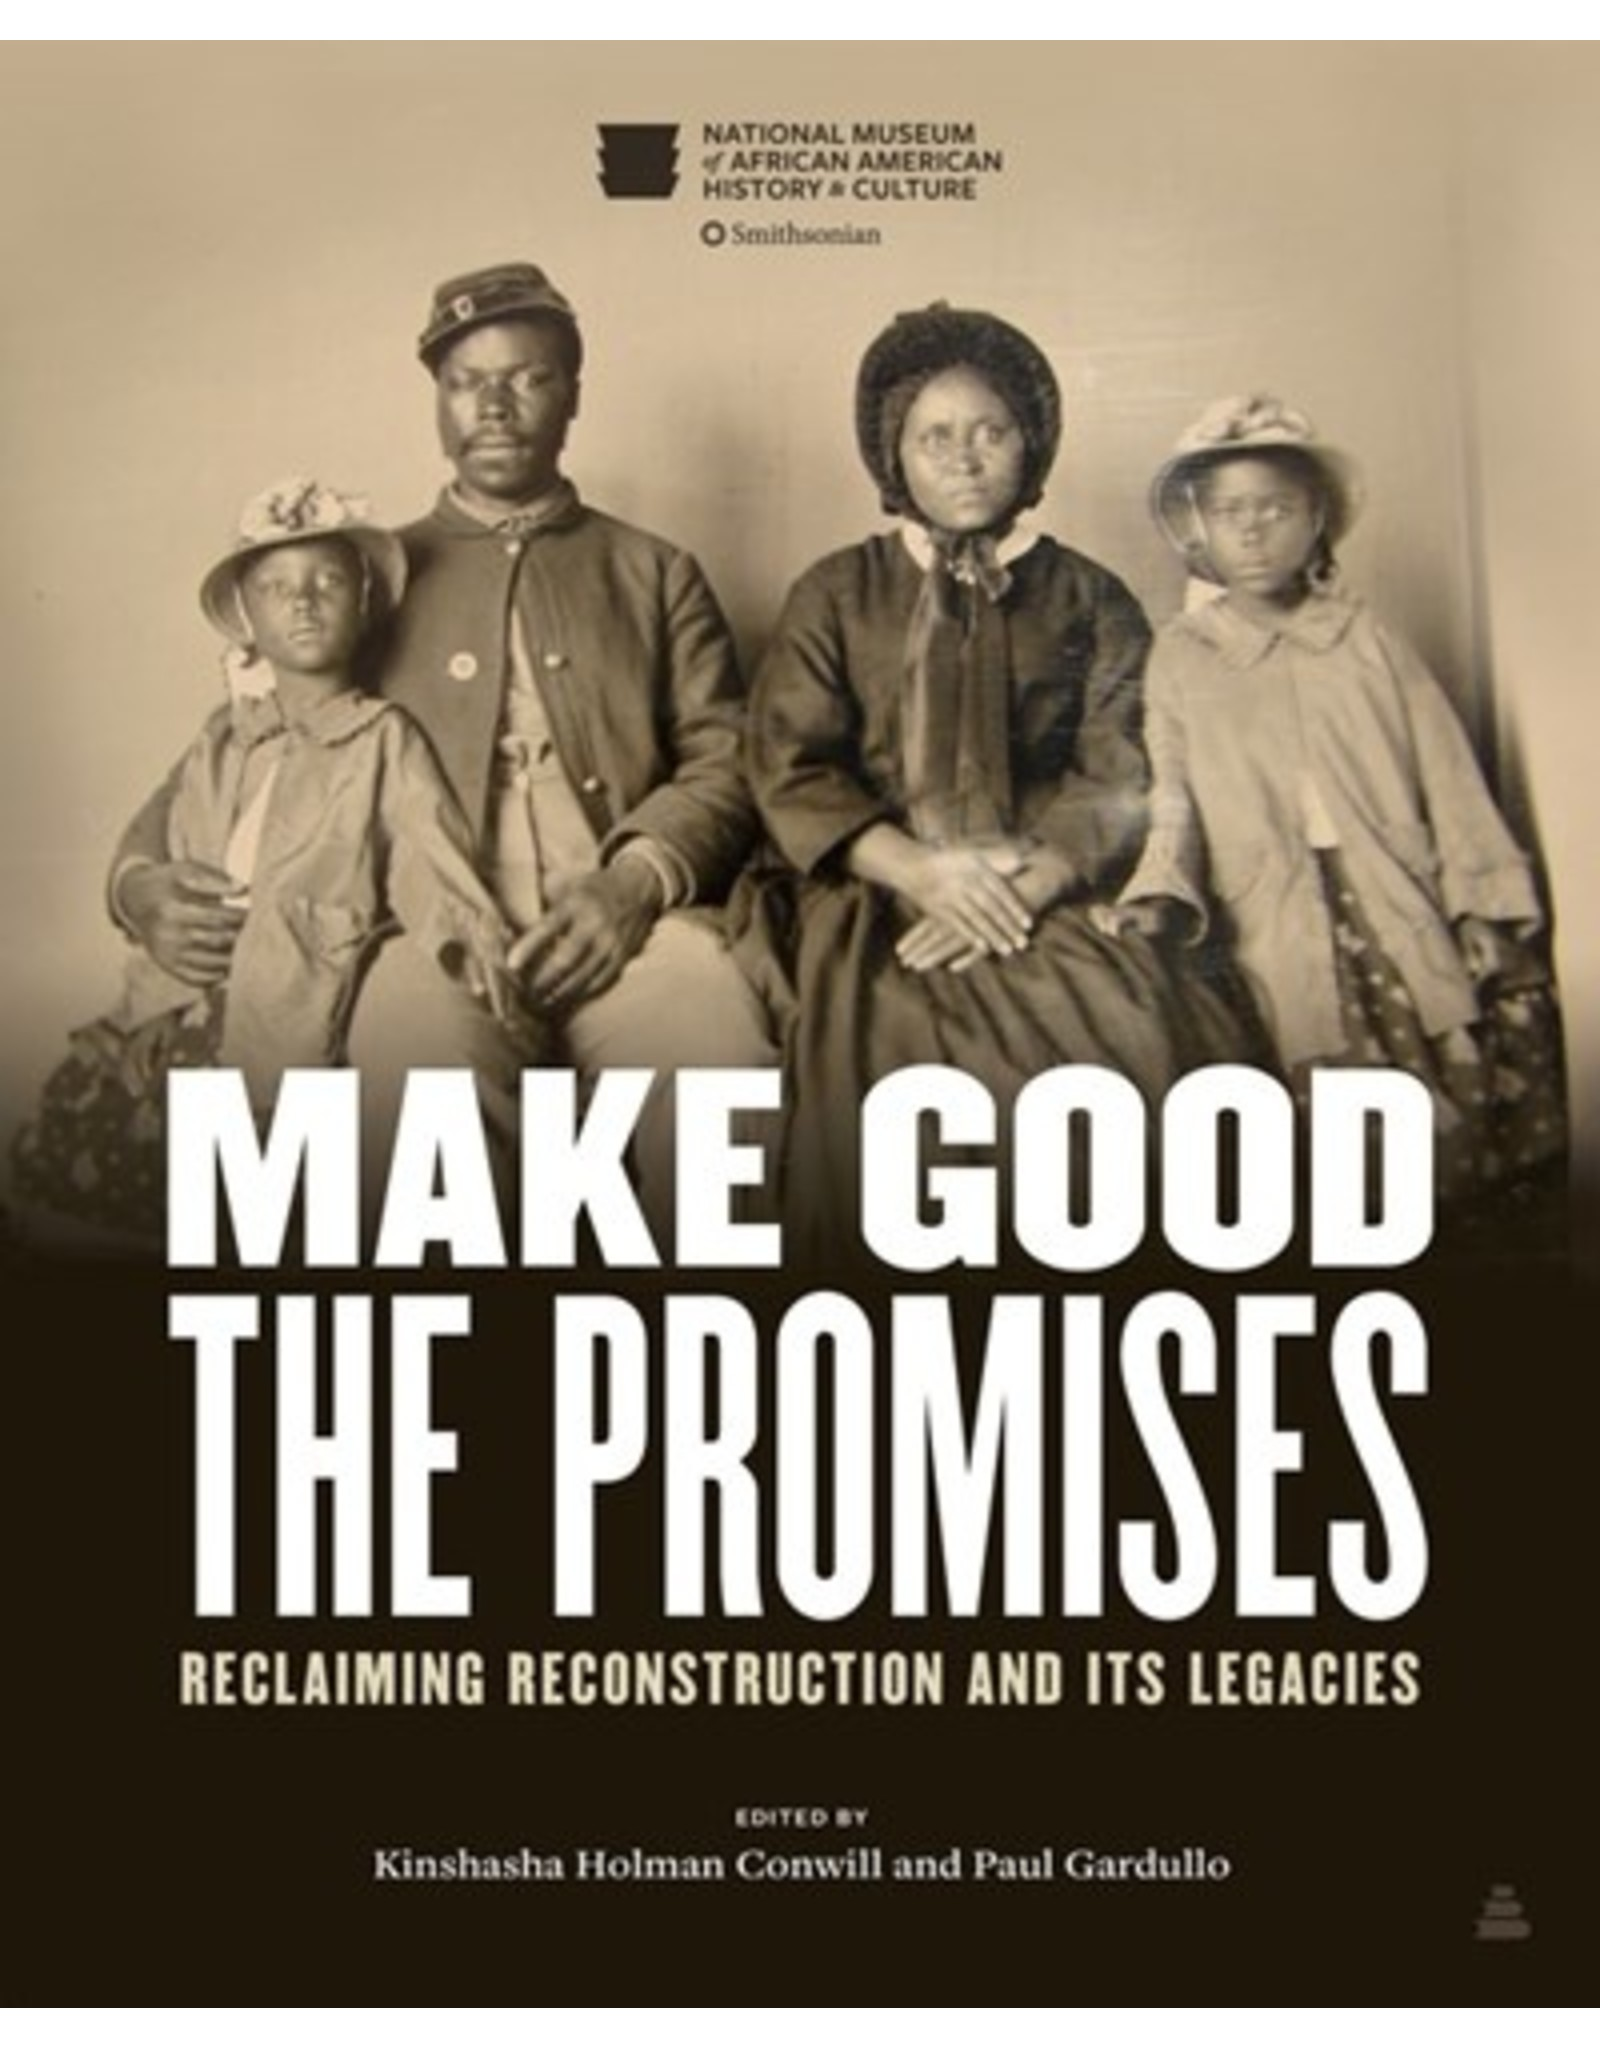 Books Make Good The Promises: Reclaiming Reconstruction and its Legacies edited by Kinshasha Holman Conwill and Paul Gardullo